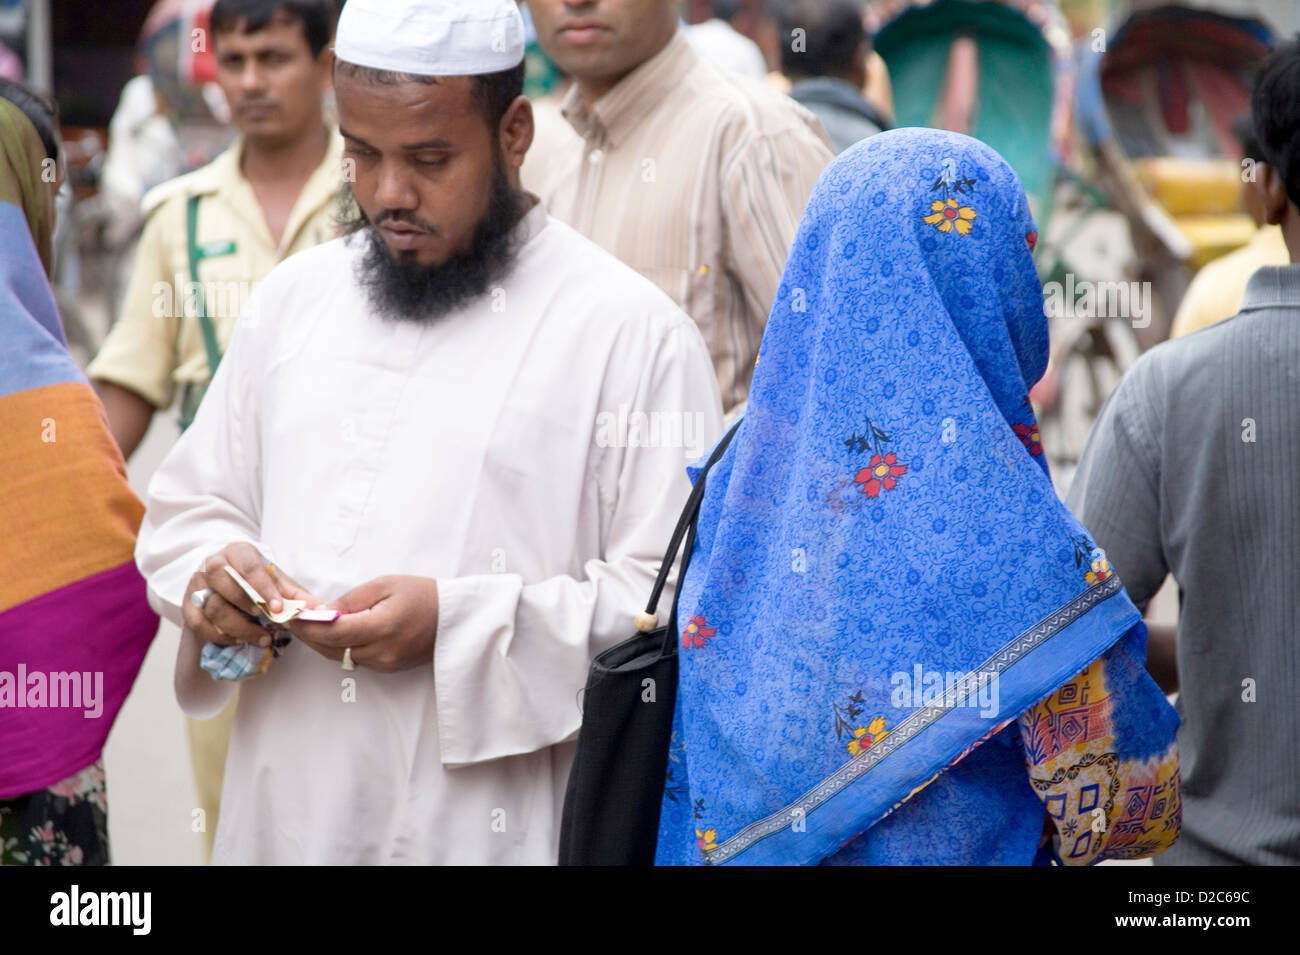 Muslim Bearded Man And Woman In Blue Sari, Lalbagh Fort, Dhaka, Bangladesh (Also Known As Fort Aurangabad) - Stock Image